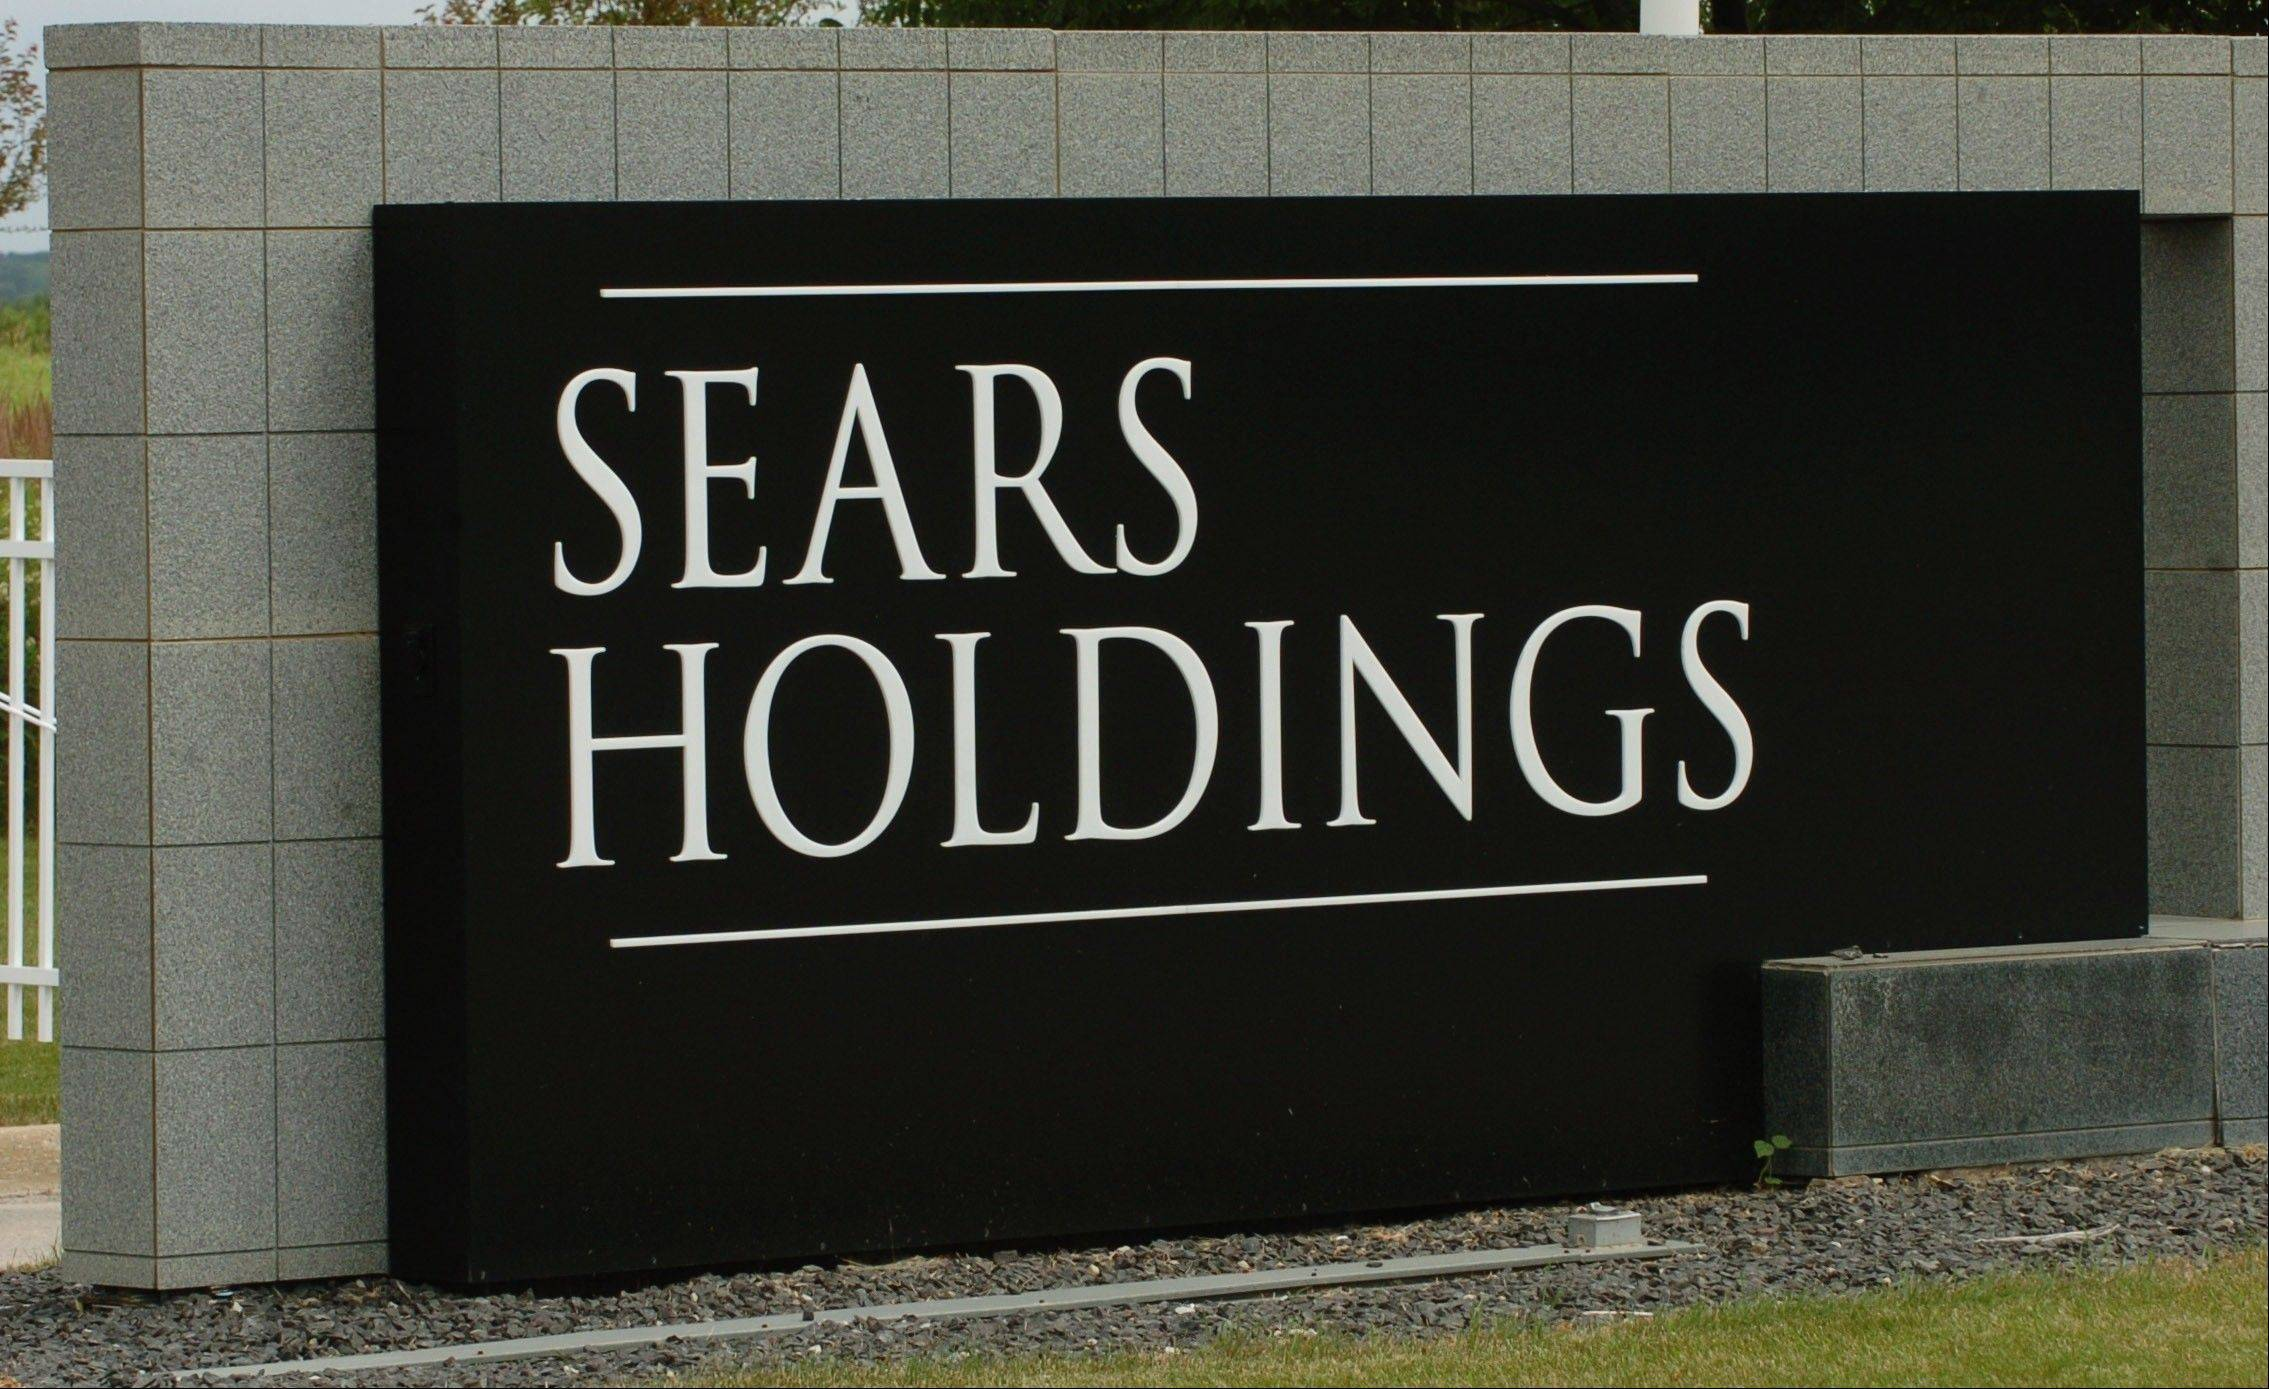 Sears Hometown and Outlet Stores� fiscal third-quarter net income rose 29 percent as sales of appliances, mattresses and clothing climbed.